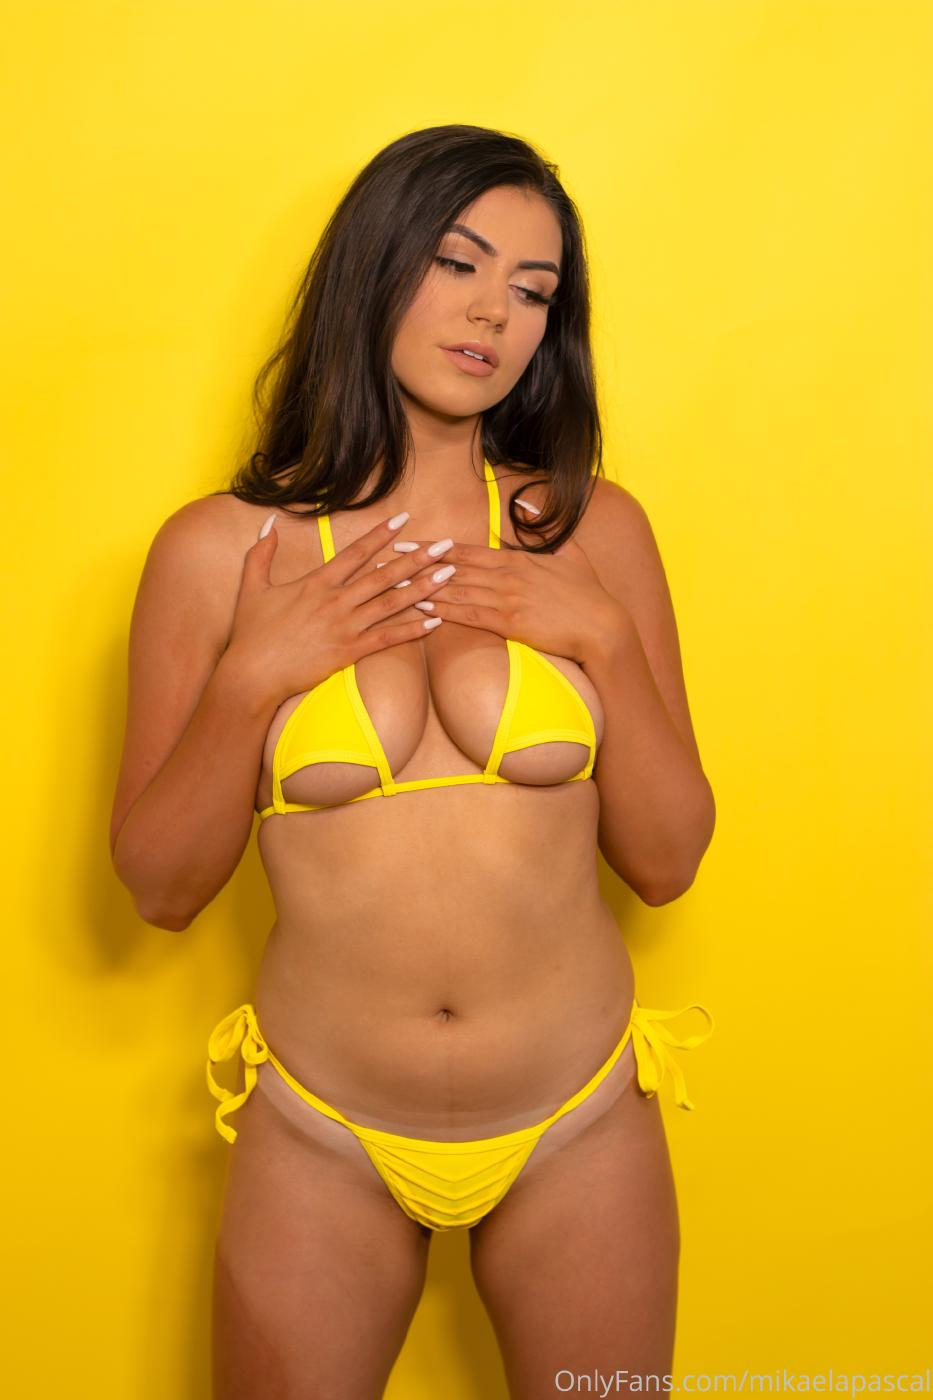 Mikaela Pascal Tan Line Onlyfans Set Leaked Ctfcow